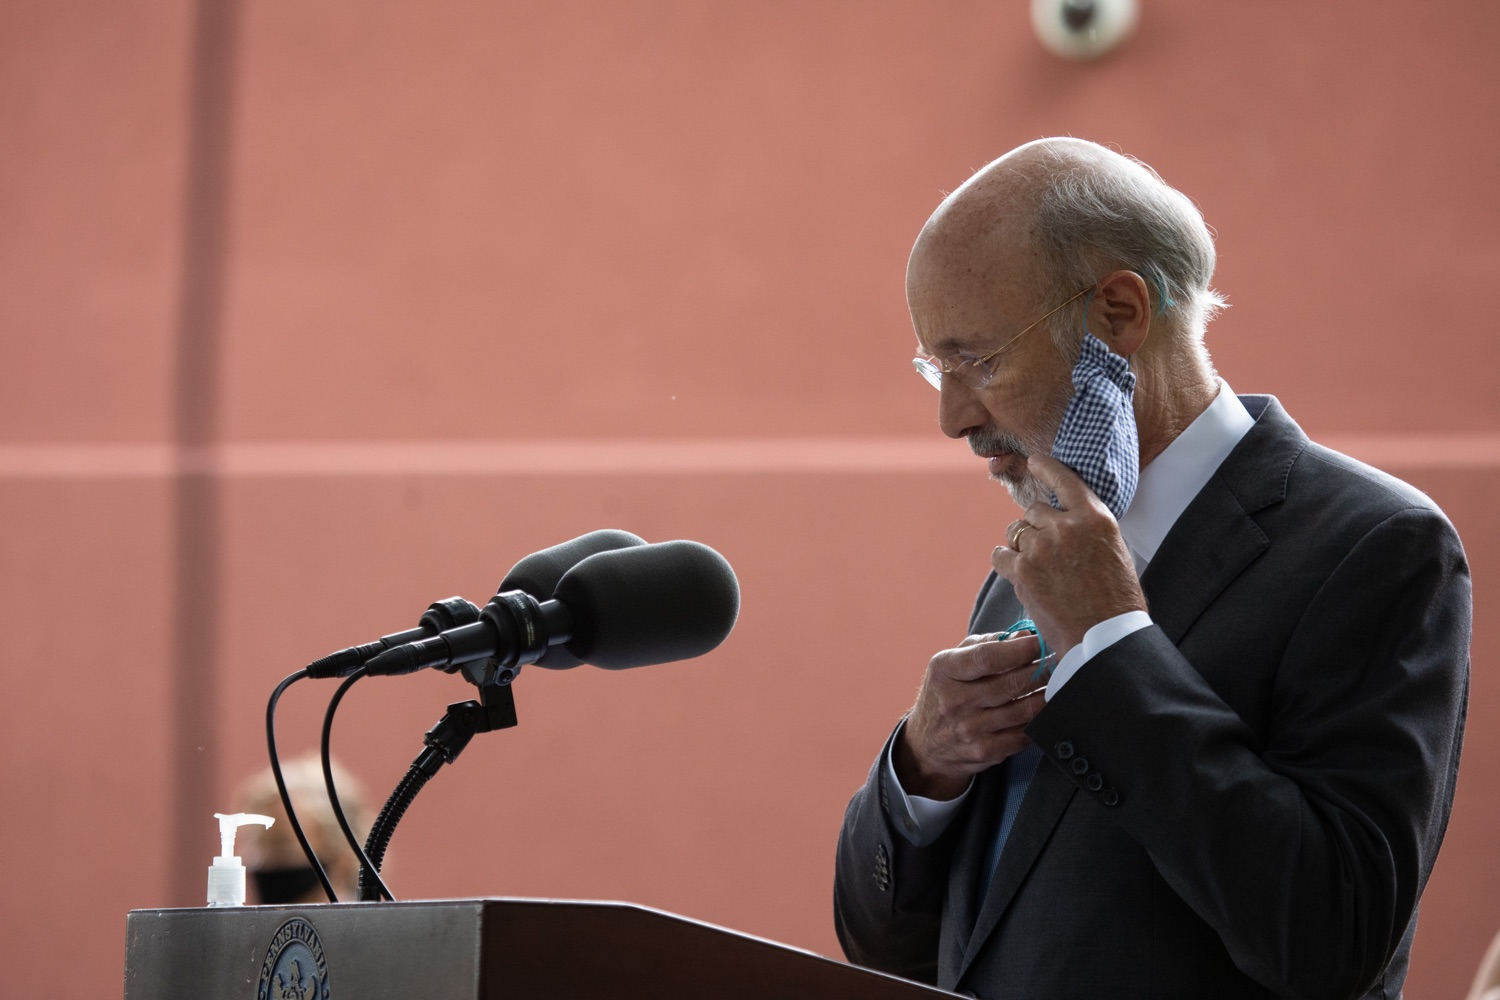 "<a href=""https://filesource.wostreaming.net/commonwealthofpa/photo/18178_GOV_Lancaster_Health_dz__14.jpg"" target=""_blank"">⇣ Download Photo<br></a>Pennsylvania Governor Tom Wolf speaking at the event.  Governor Tom Wolf today visited Lancaster Health Center, a federally qualified health center, to thank staff for their work to ensure the communitys most vulnerable receive care during COVID-19 and year-round.  Harrisburg, PA  July 24, 2020"